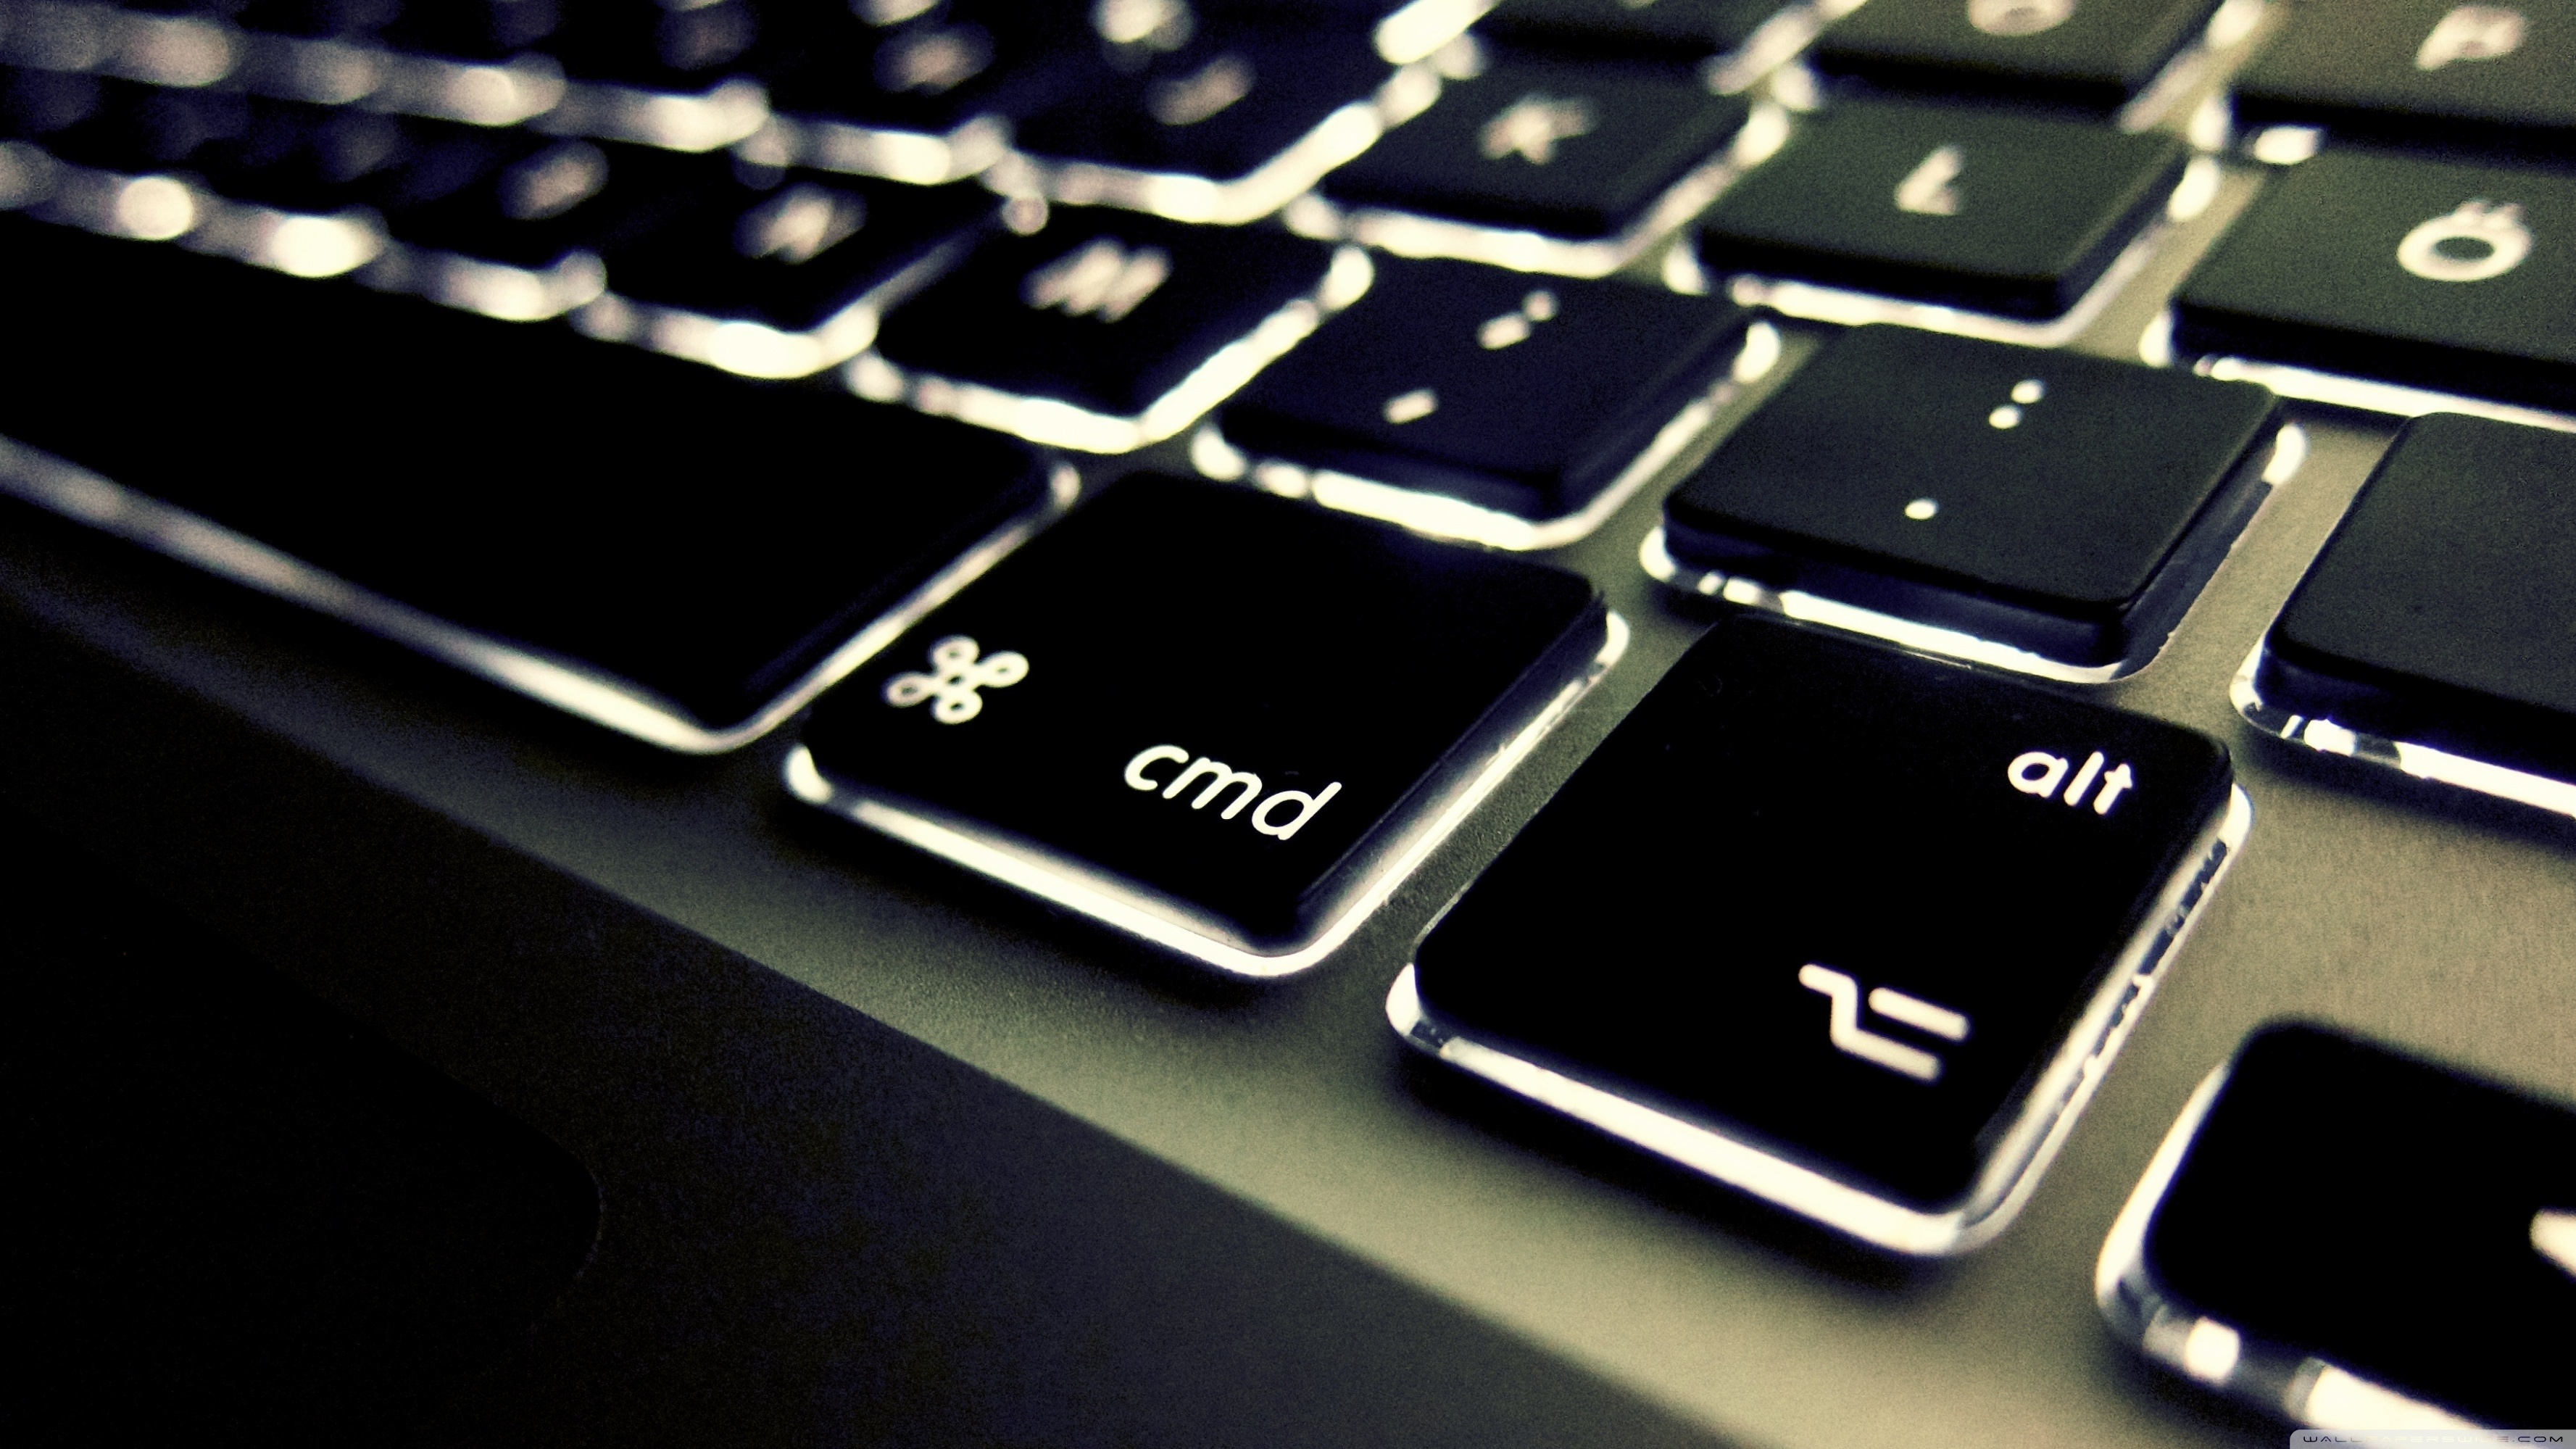 Led Keyboard Wallpapers Wallpaper Cave